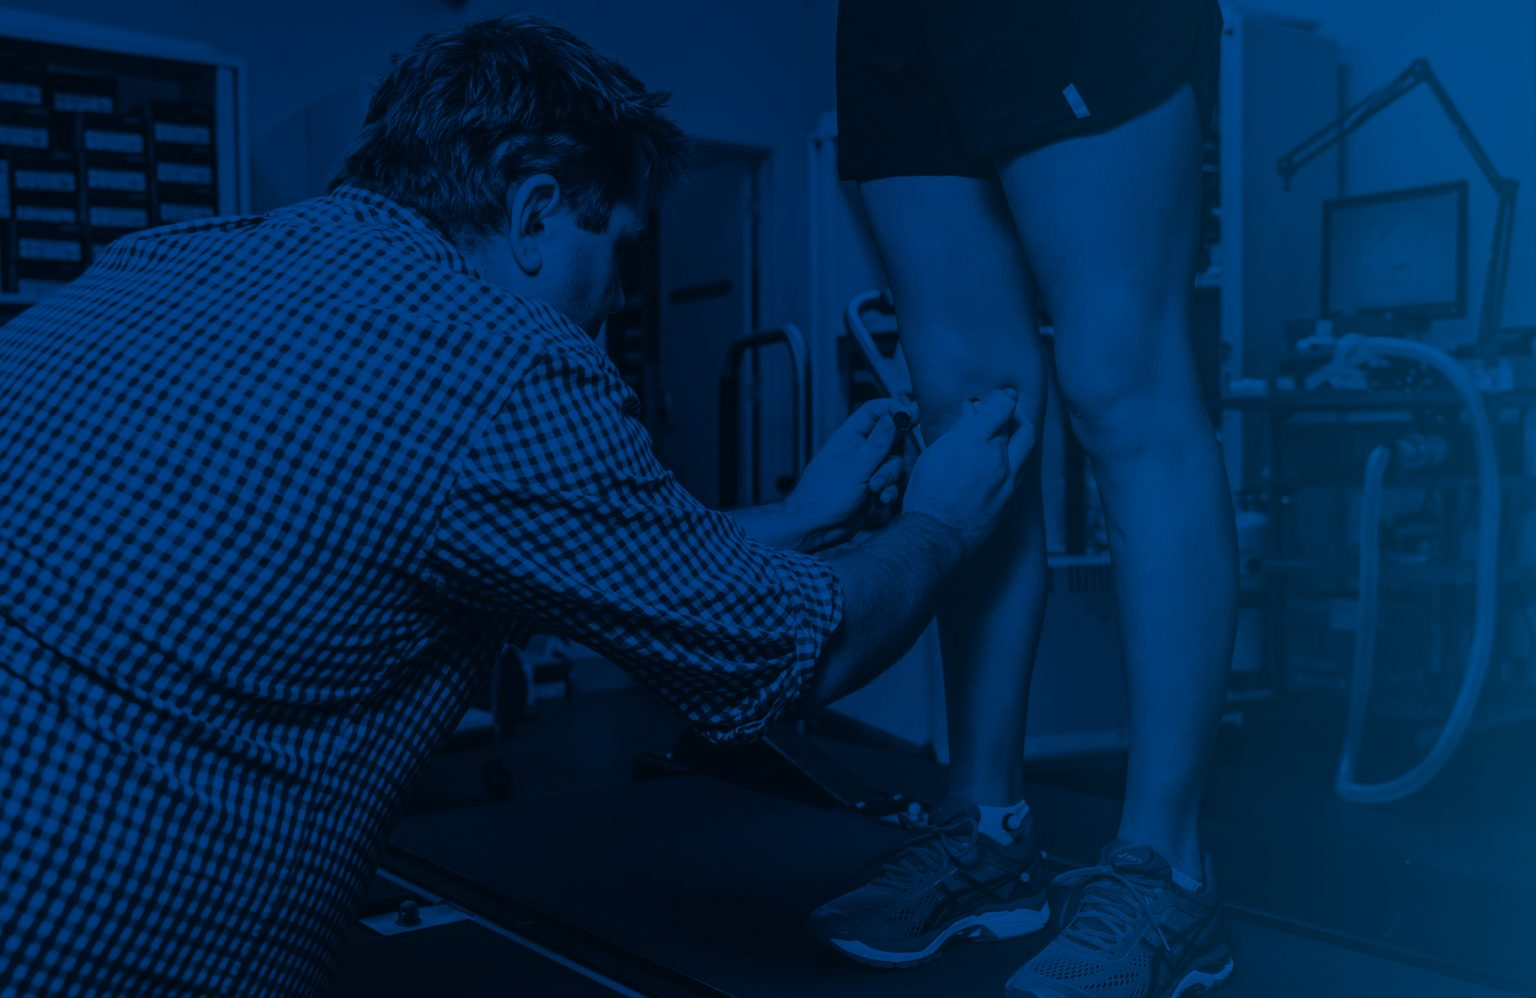 The Biomechanics Lab | Adelaide Podiatry, Biomechanics, Physiotherapy & Sports Science